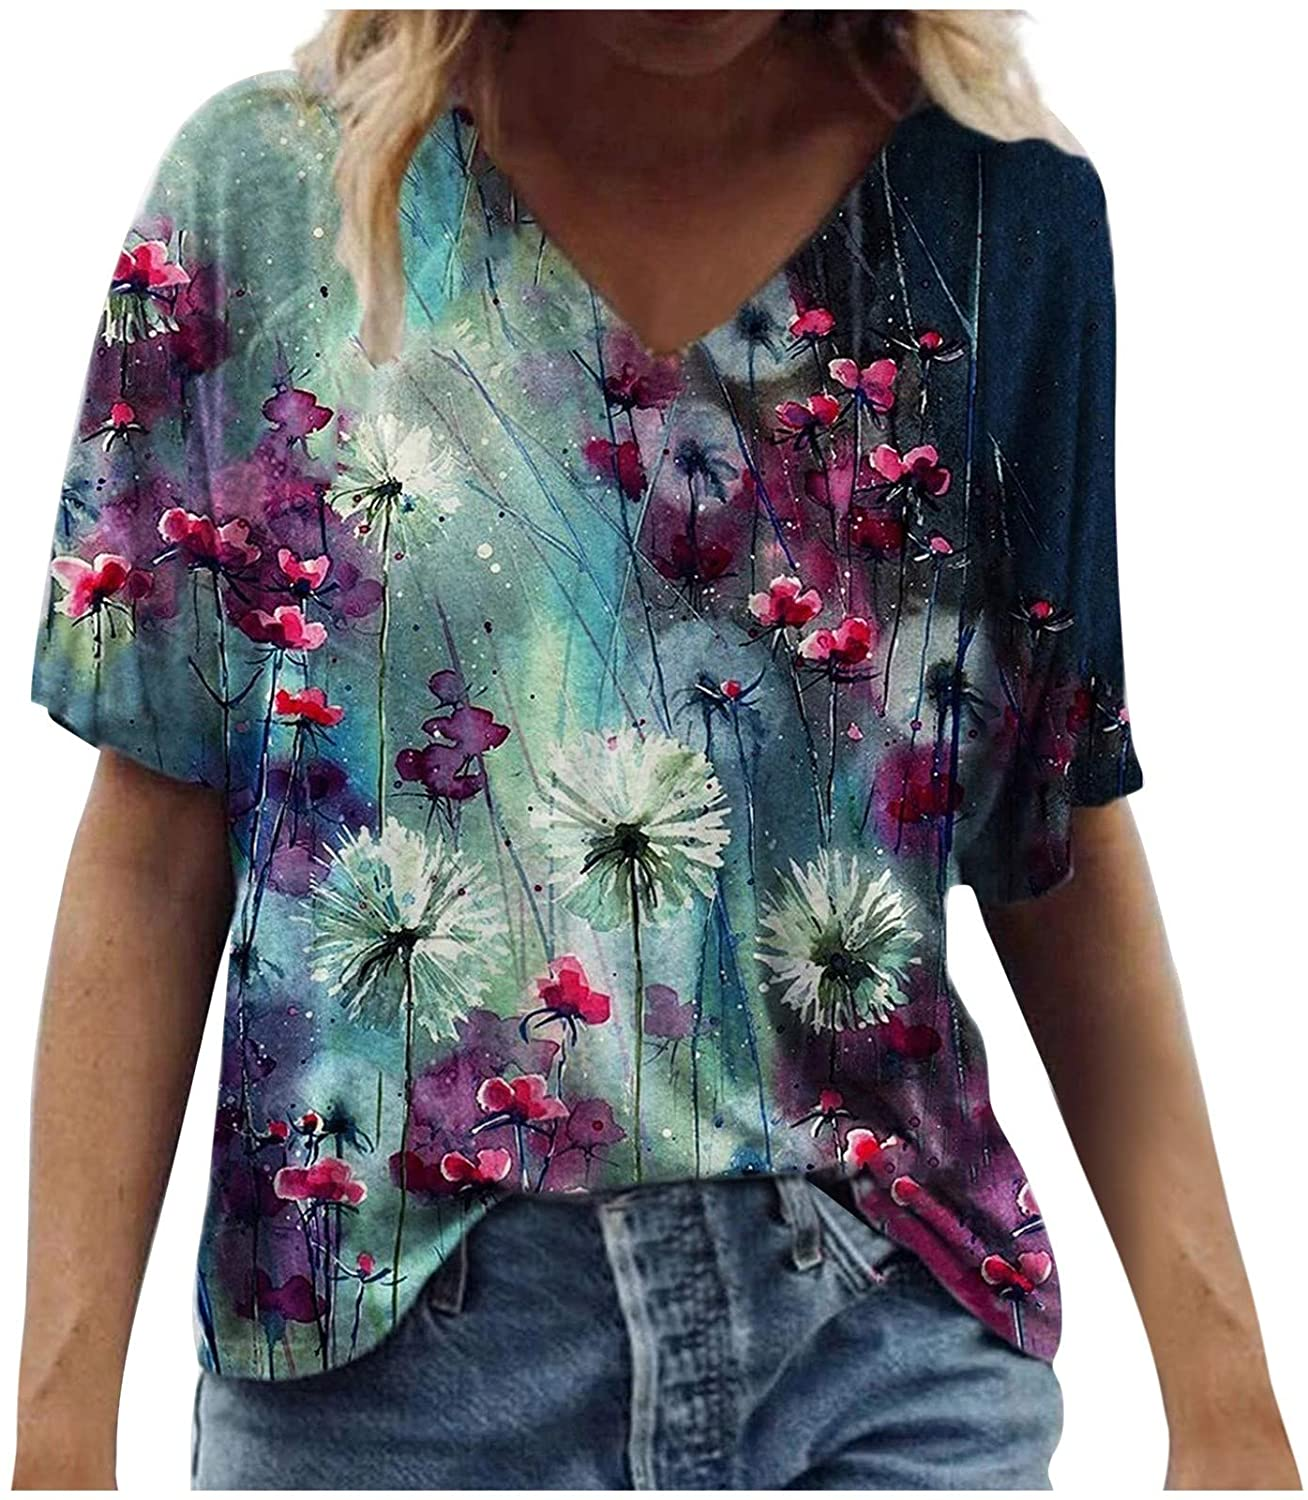 Womens Summer Tops, Plus Size Casual Top for Women Loose Fit Trendy Tees Shirts Fashion Casual Tunic